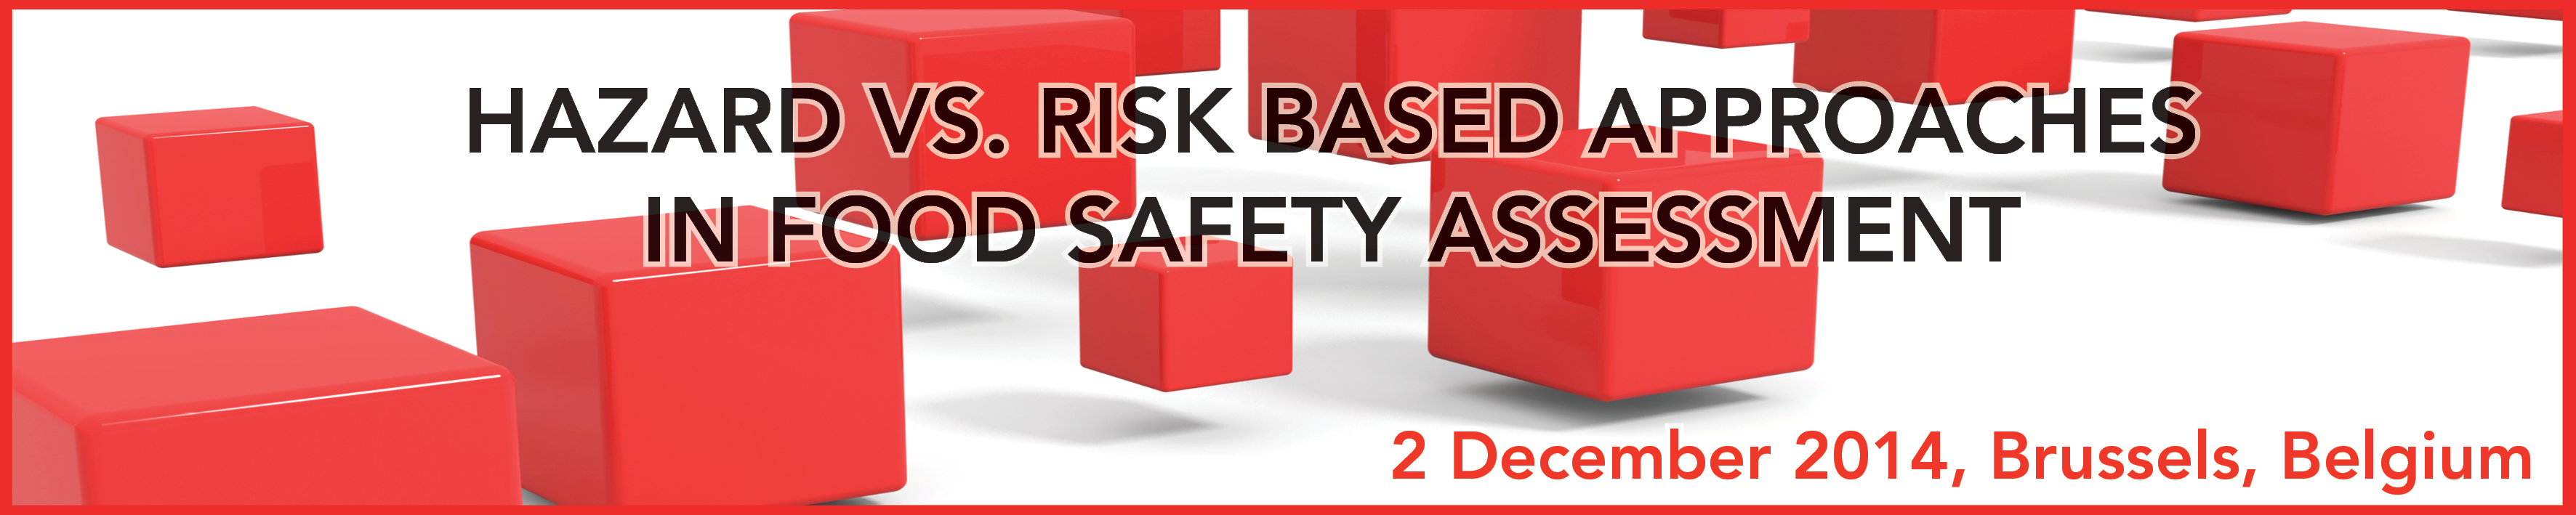 Workshop 'Hazard vs. Risk Based Approaches in Food Safety Assessment'